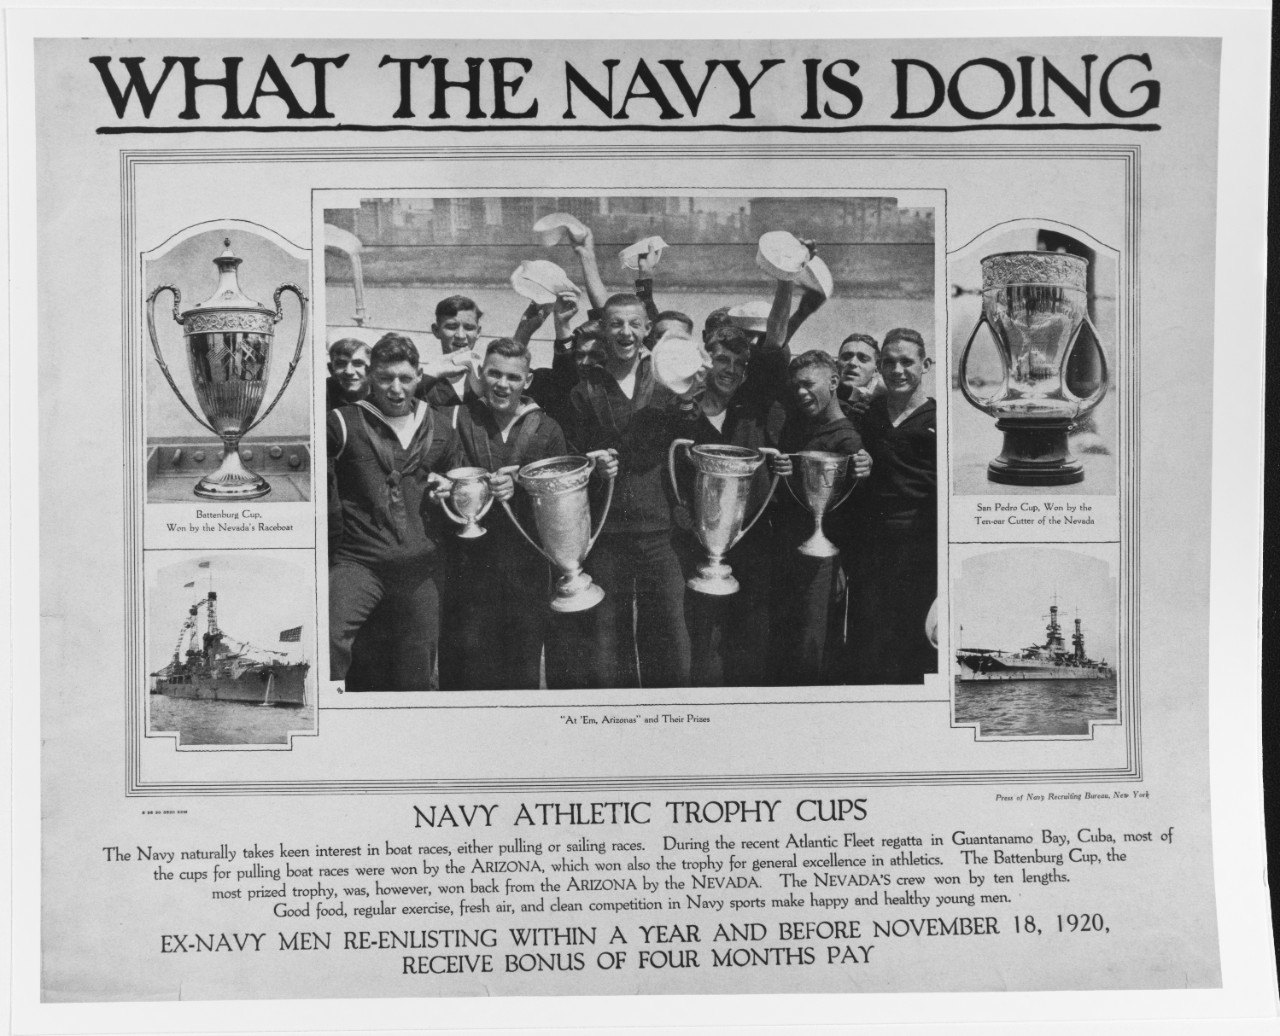 Recruiting Poster: What the Navy is Doing: Navy Athletic Trophy Cups